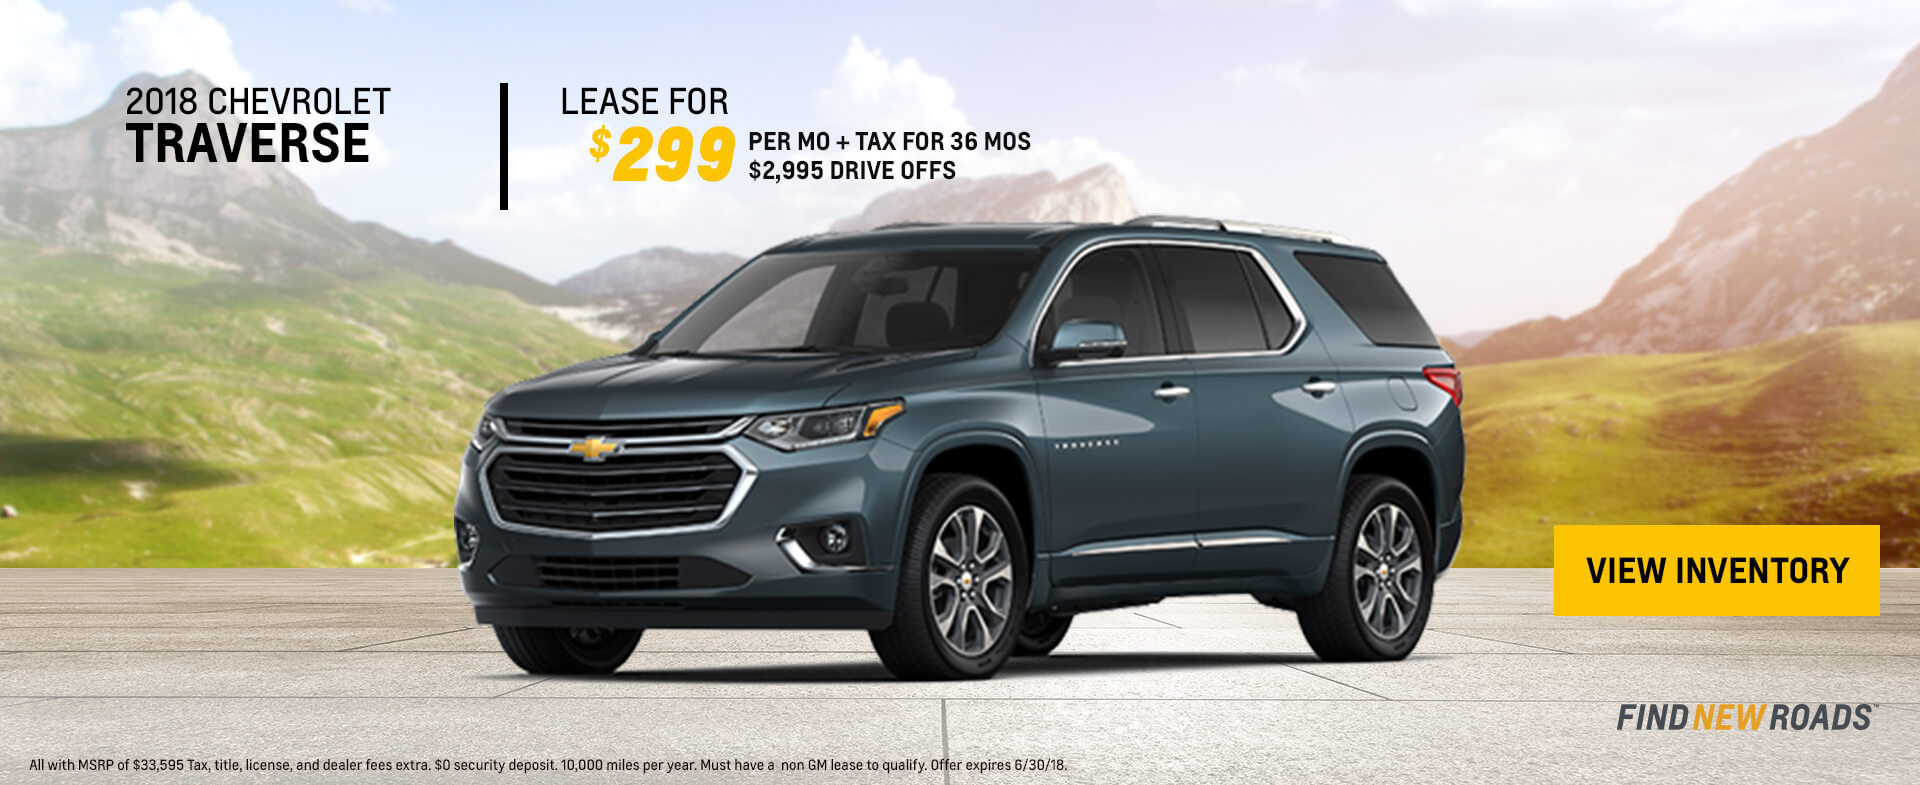 2018 Chevy Traverse $299